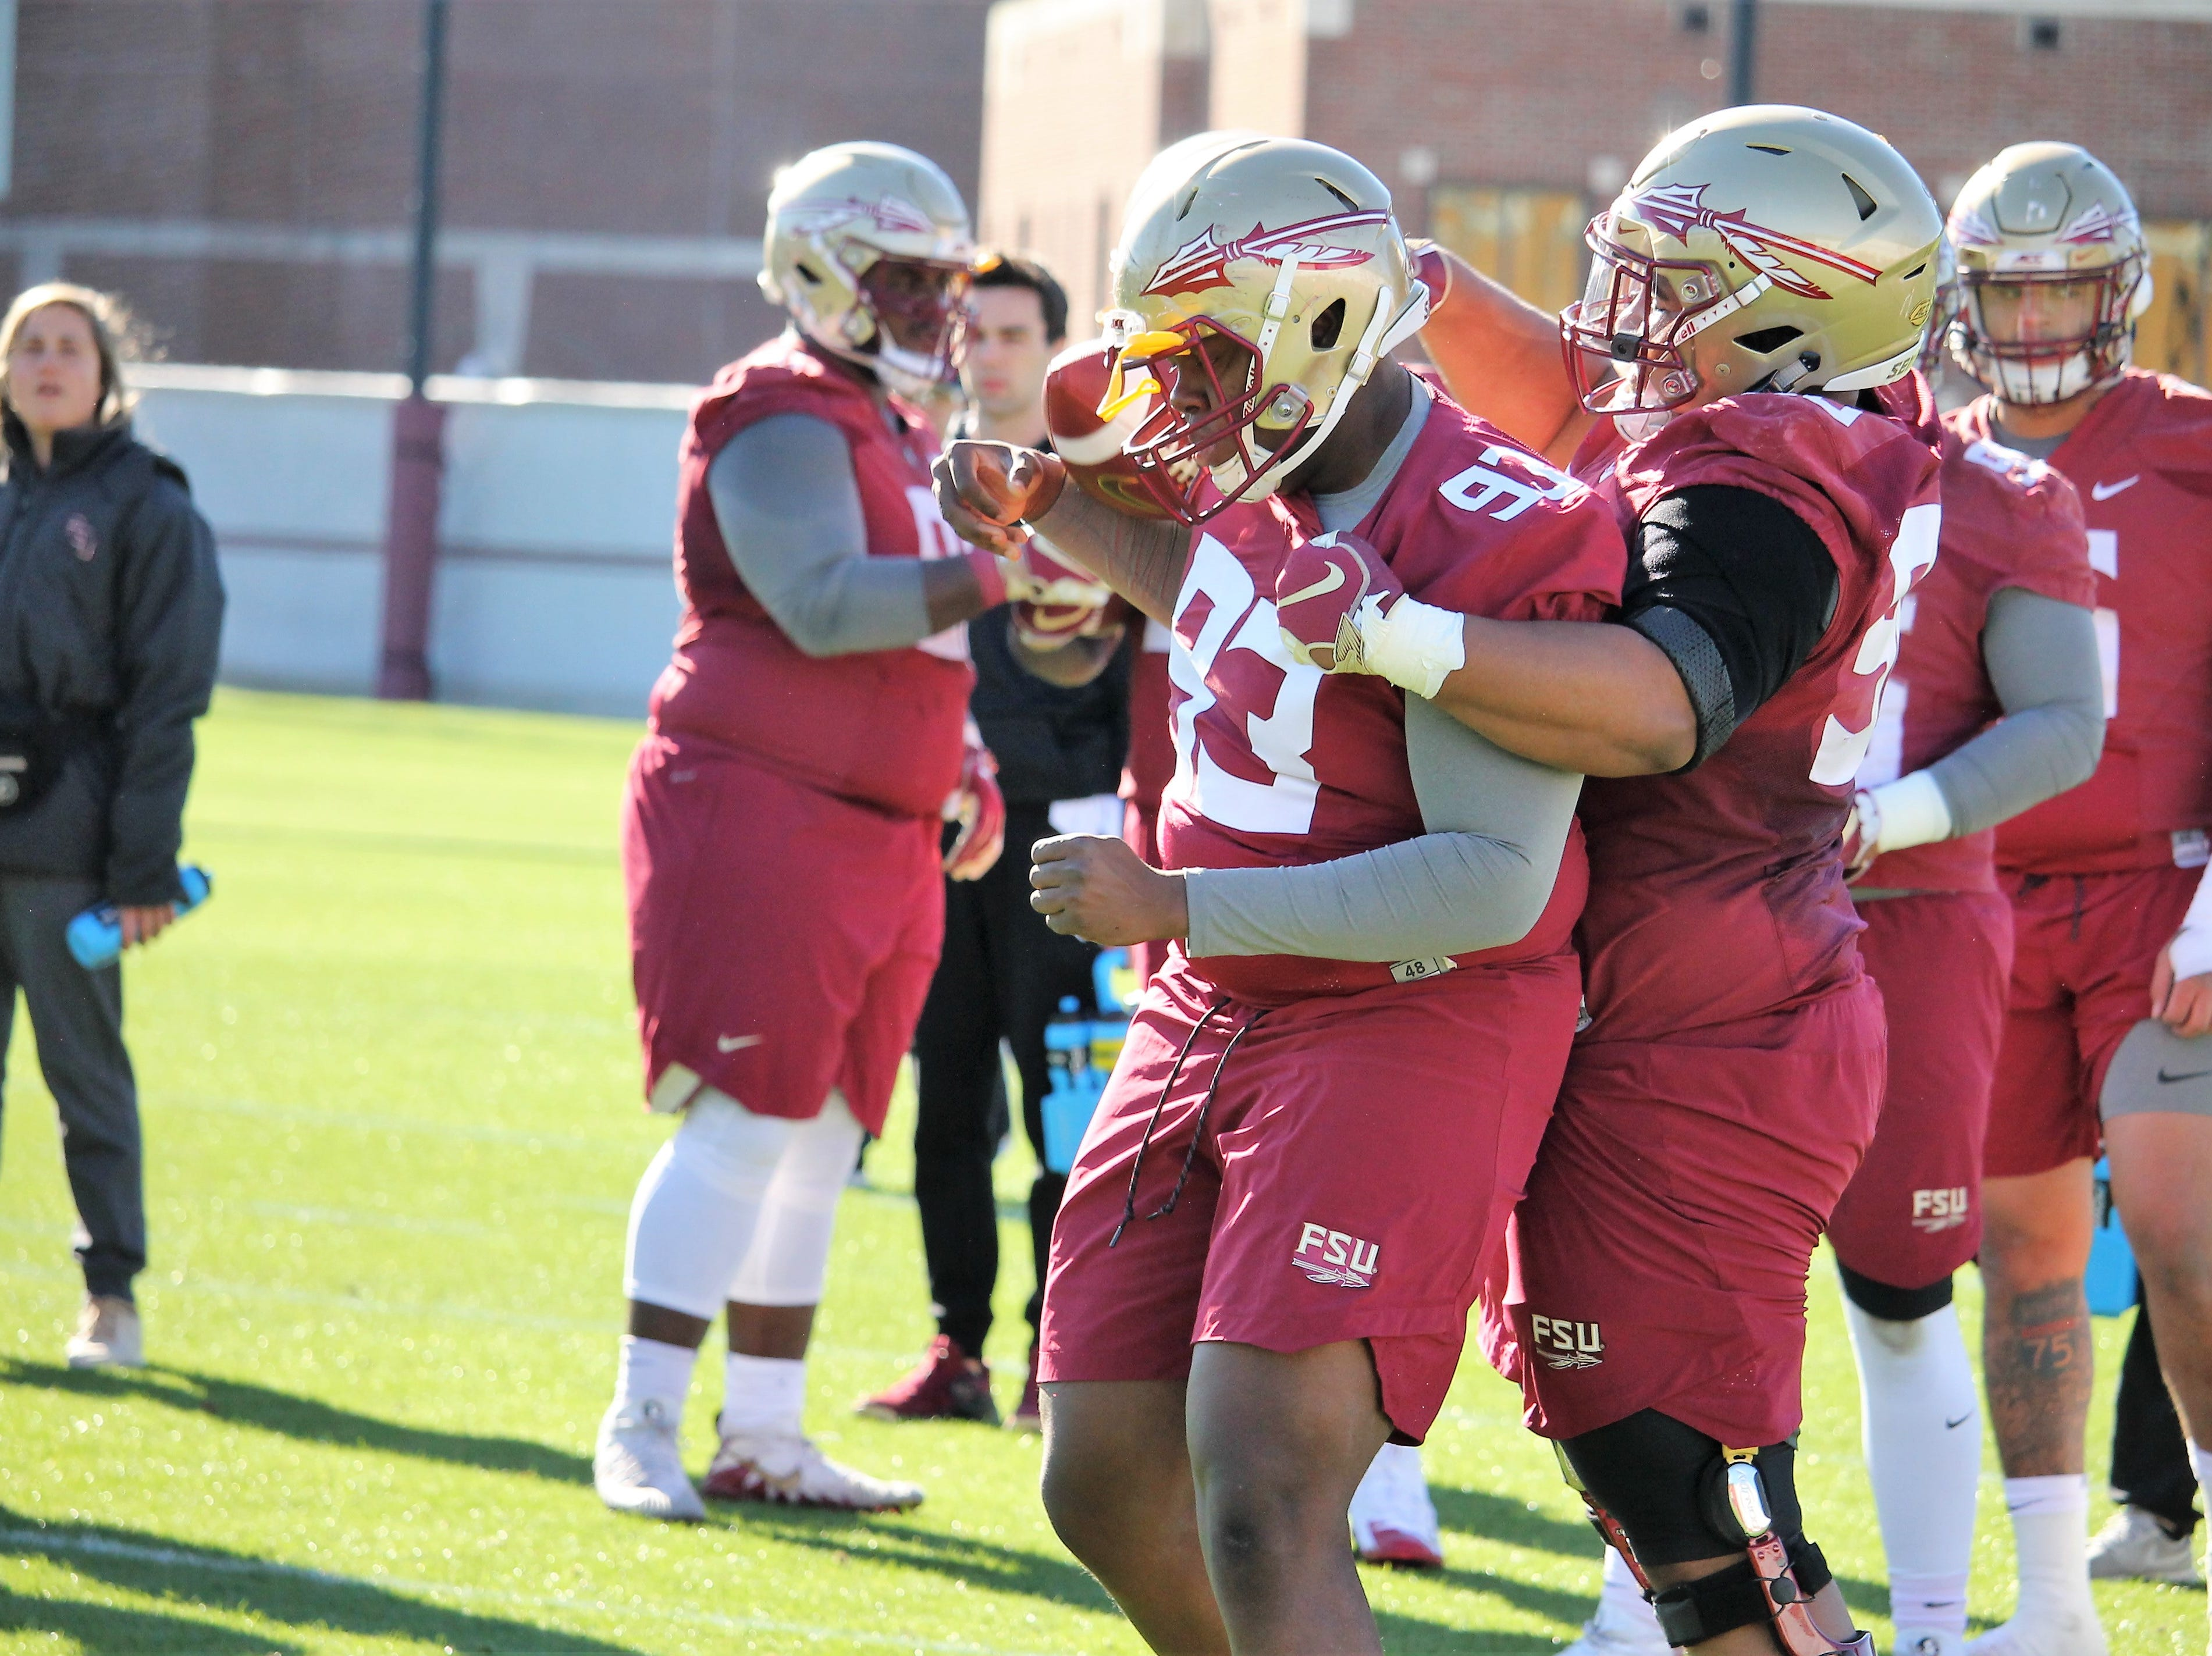 Defensive tackle Tru Thompson at FSU football practice on March 6, 2019.